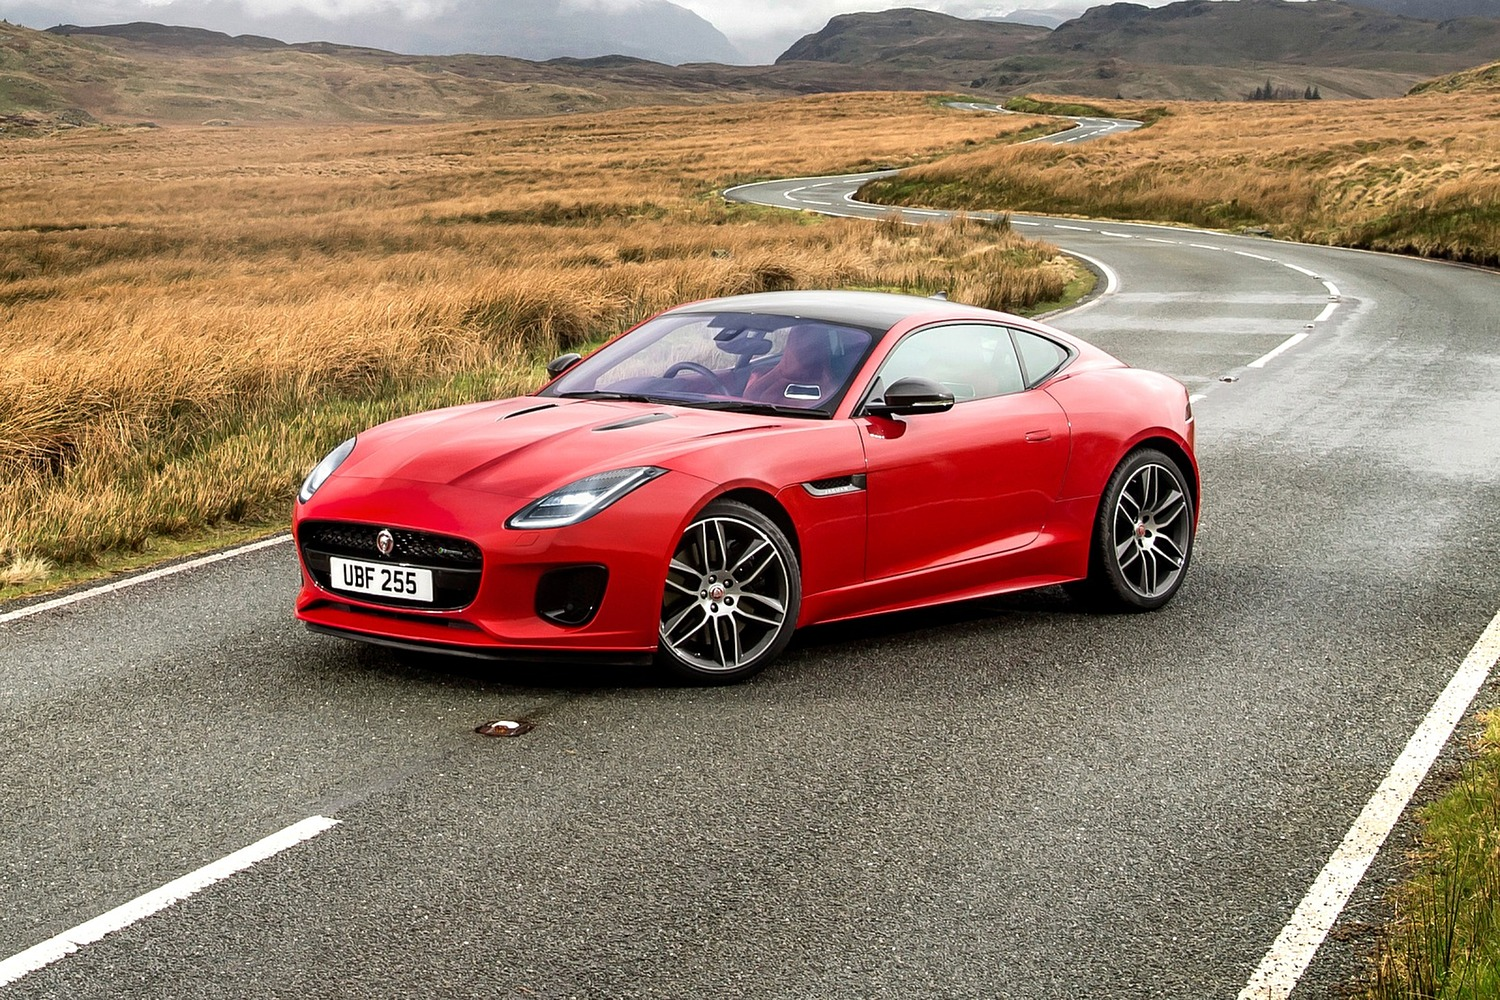 2018 Jaguar F-TYPE Coupe Exterior